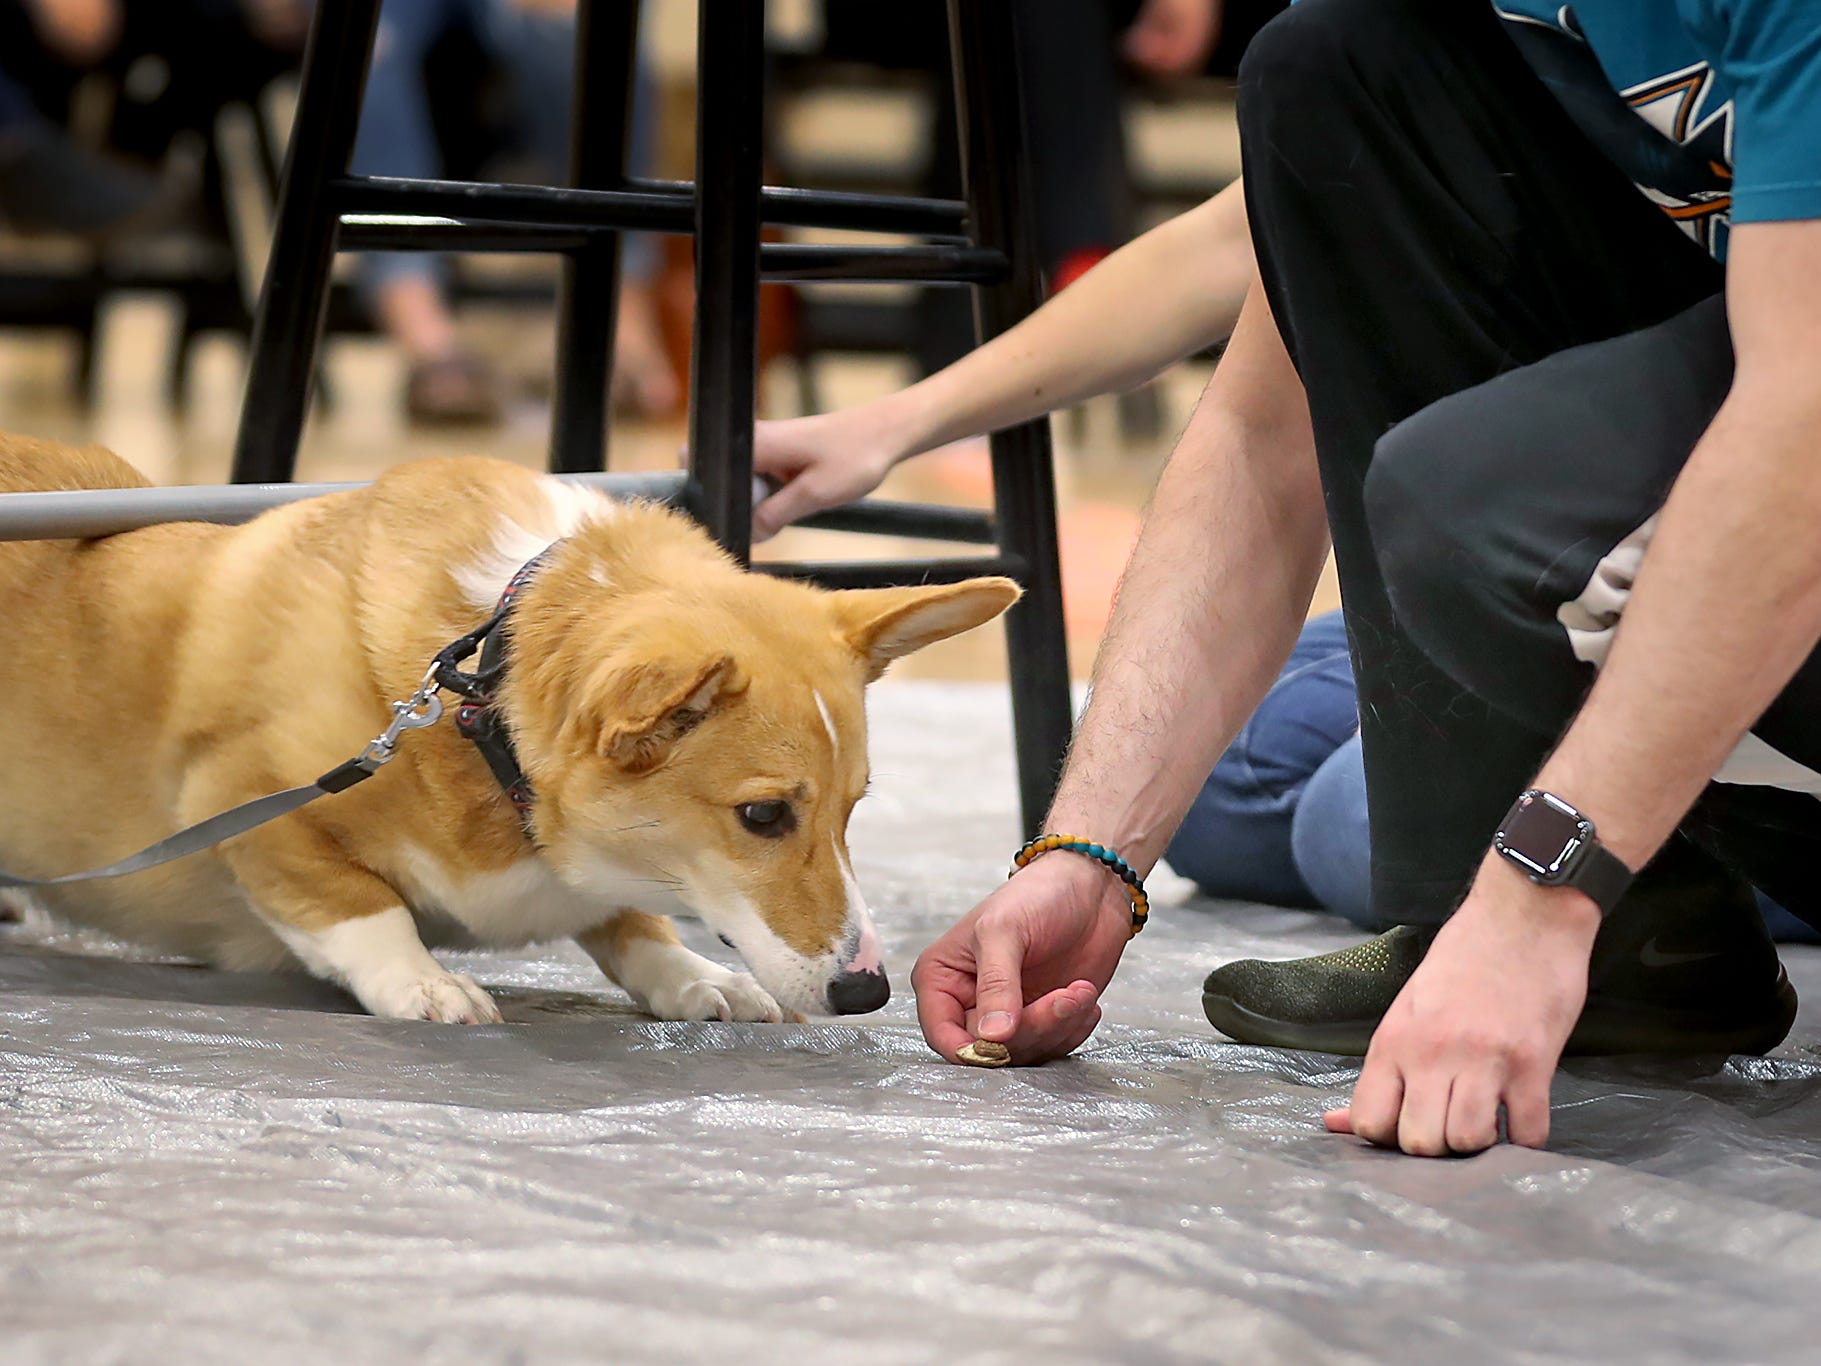 Spartacus goes for a treat under the limbo bar at the Indianapolis Corgi Limbo & Costume Contest at IUPUI, Sunday, April 14, 2019.  The event benefits children orphaned by HIV/AIDS in eSwatini, Africa.  It is presented by the Give Hope, Fight Poverty IUPUI chapter.